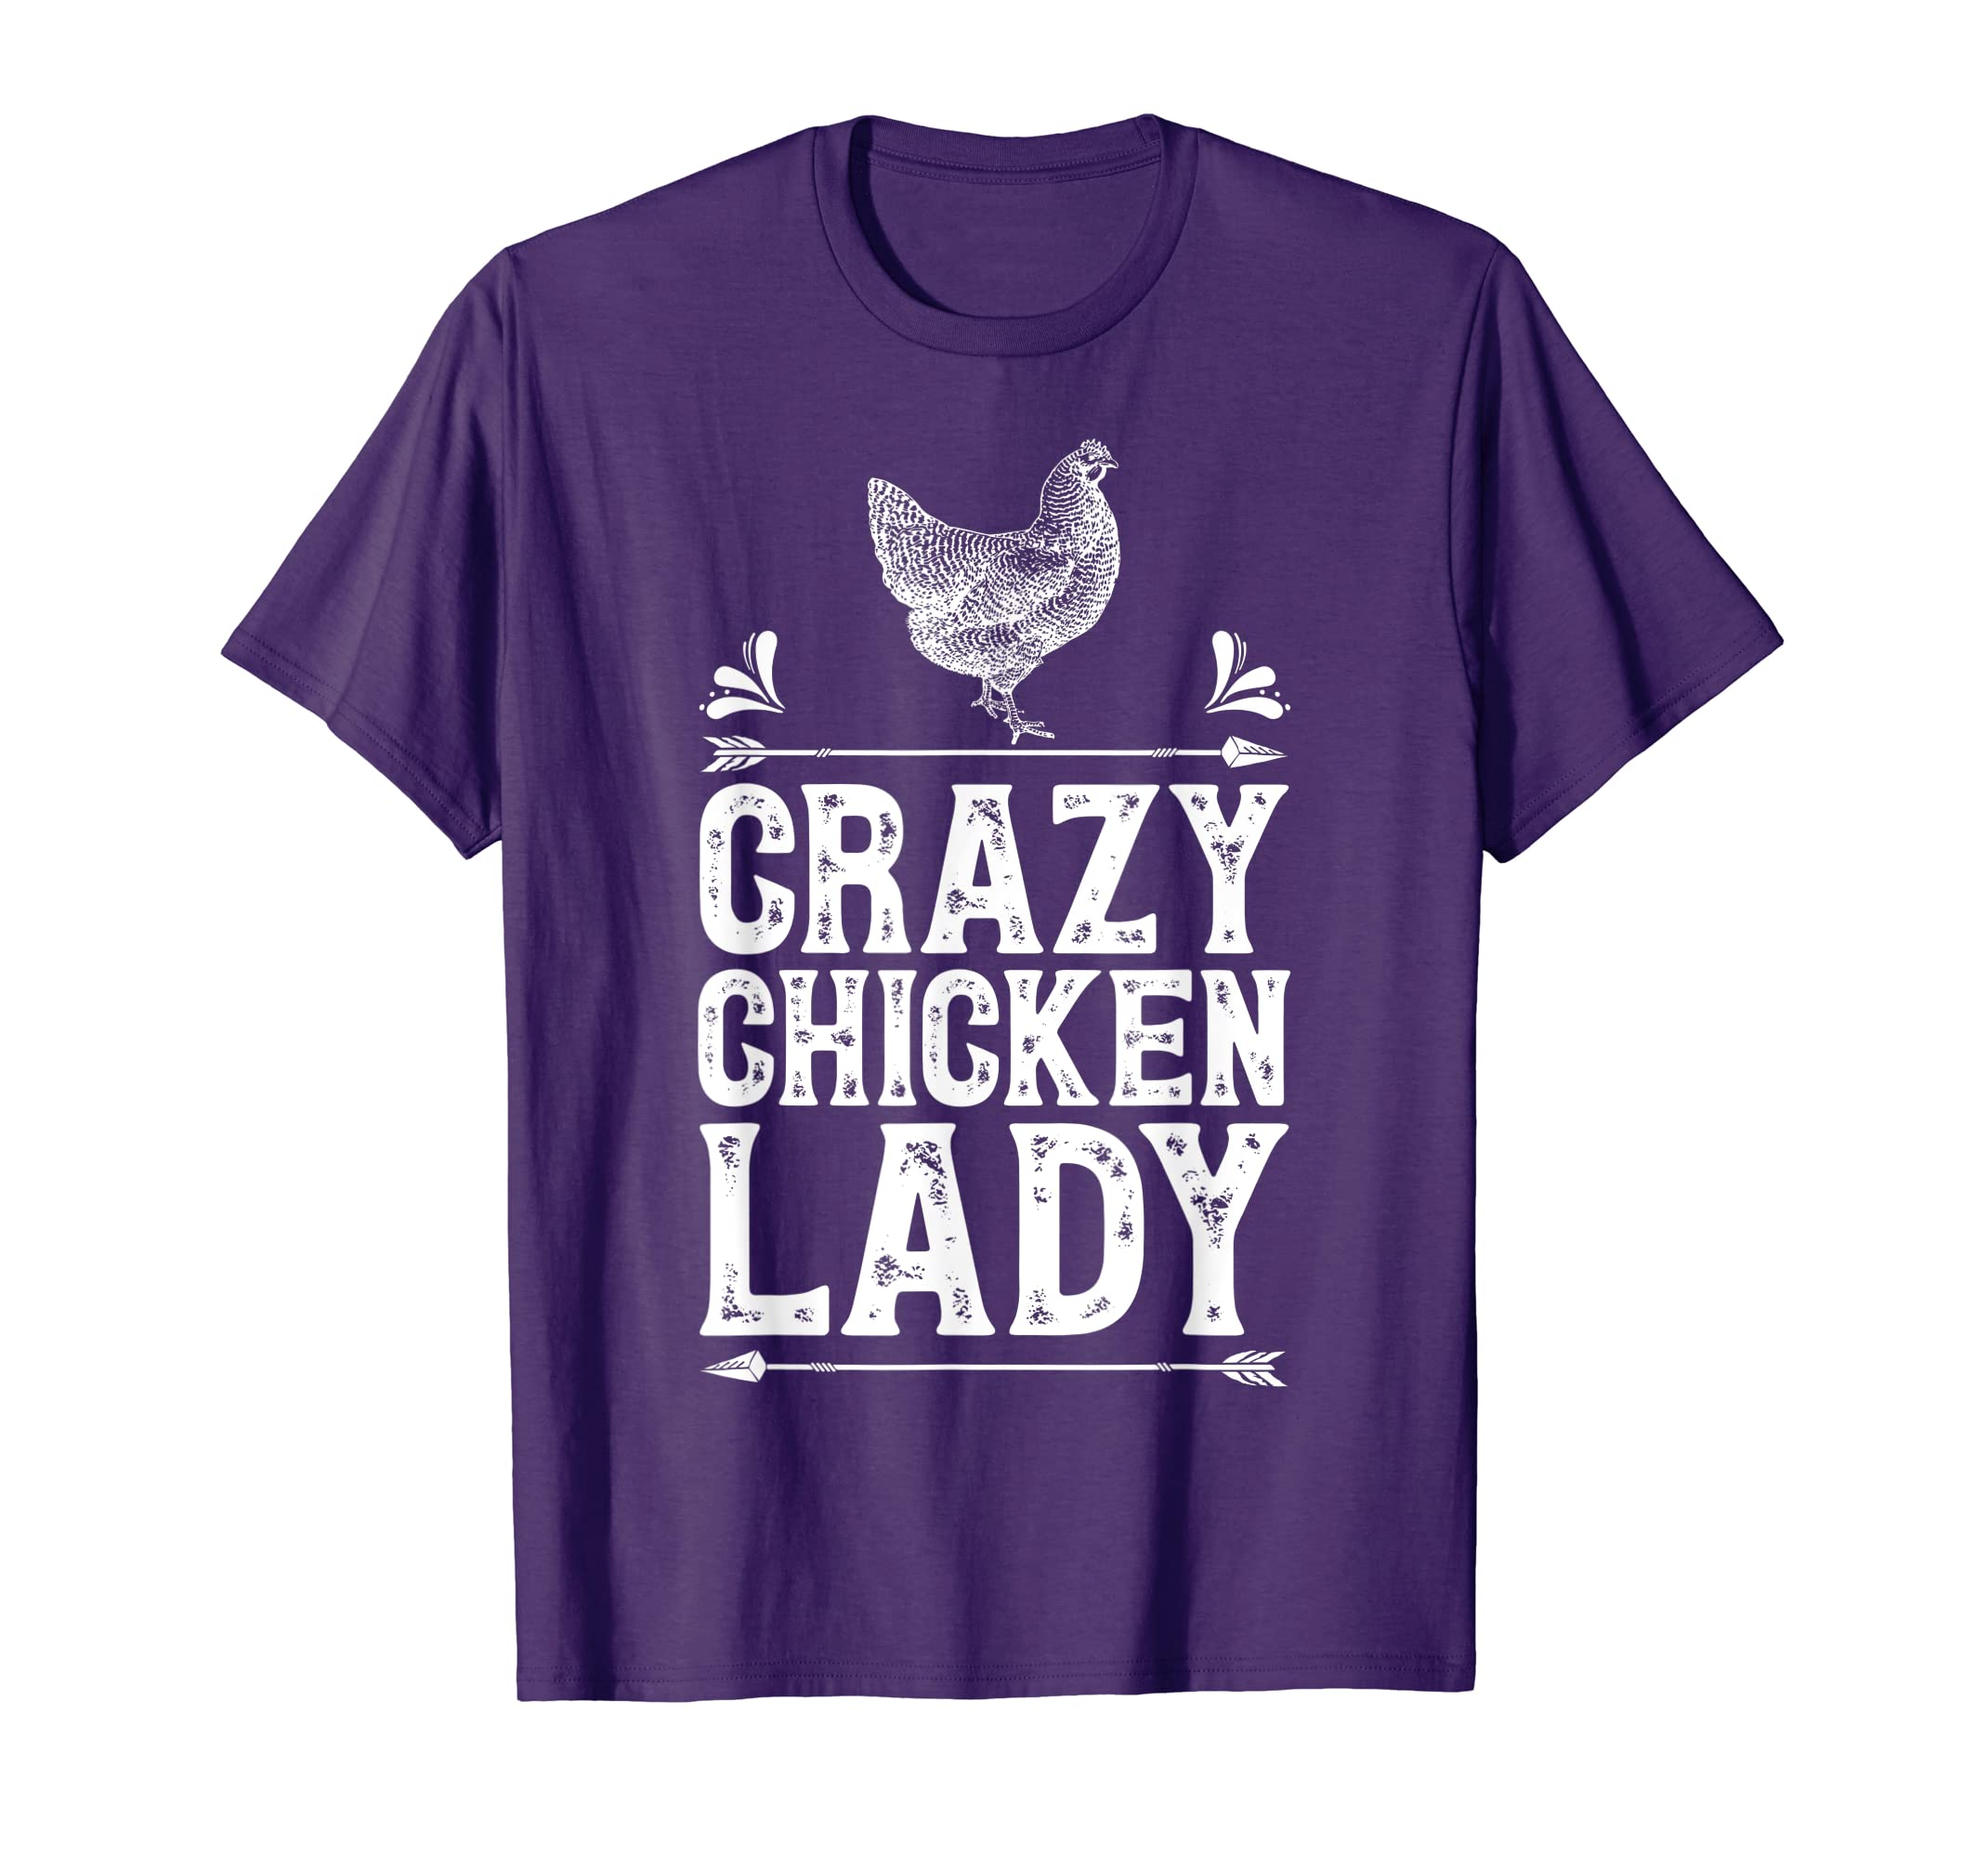 8e65472cd Amazon.com: Crazy Chicken Lady T Shirt Funny Farm Poultry Farmer Gifts:  Clothing